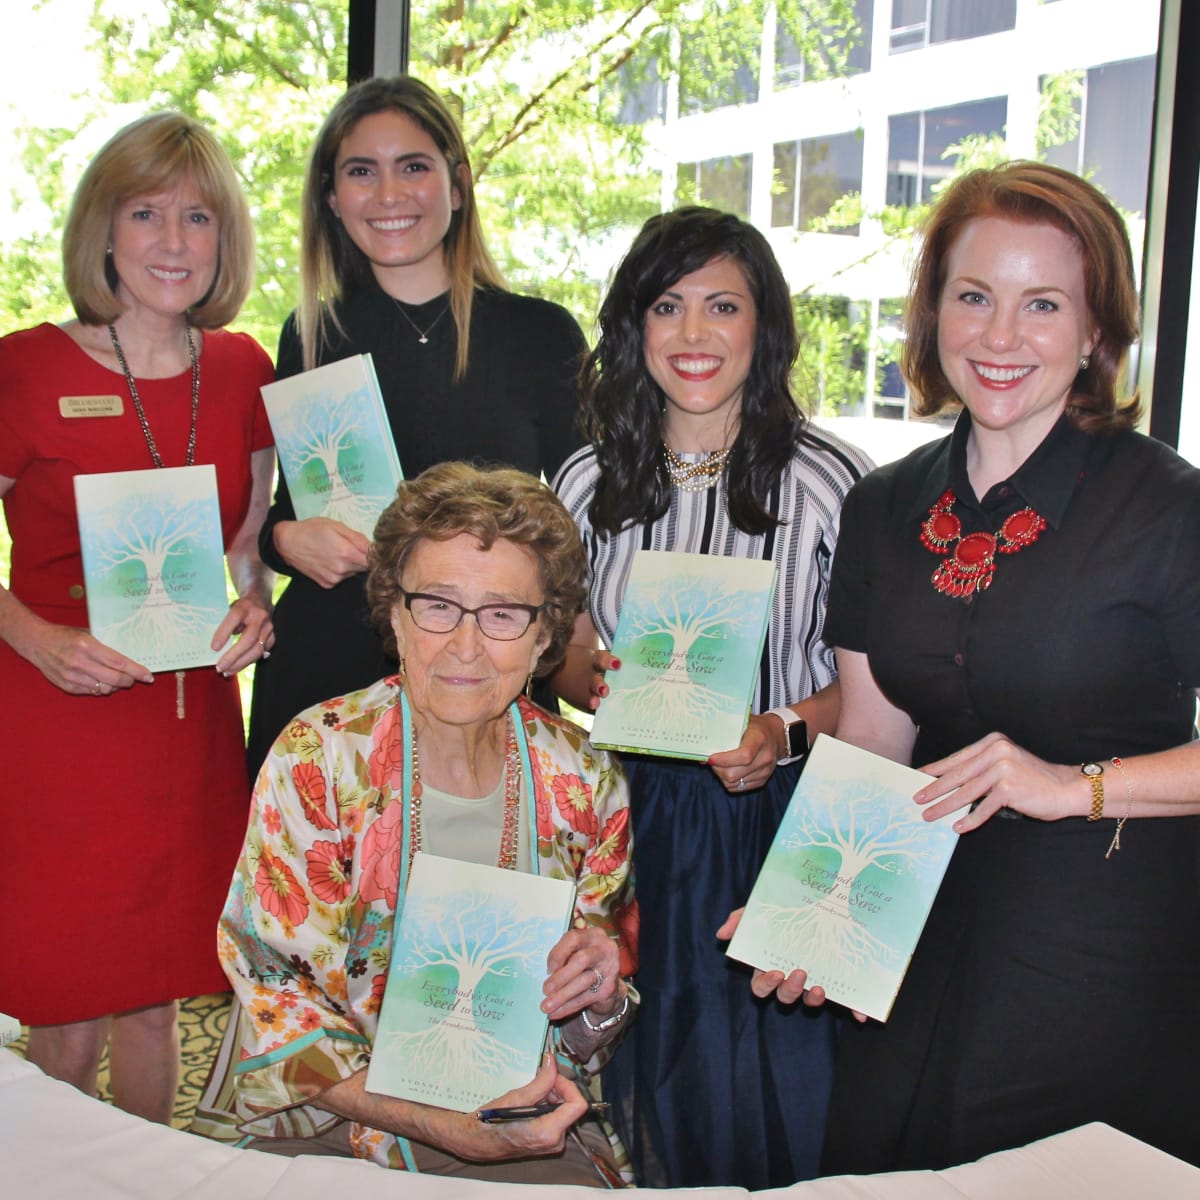 Brookwood founder and author Yvonne Streit with co-author Jana Mullins, Yara Suki, Grace Moceri, Amy Vandaveer